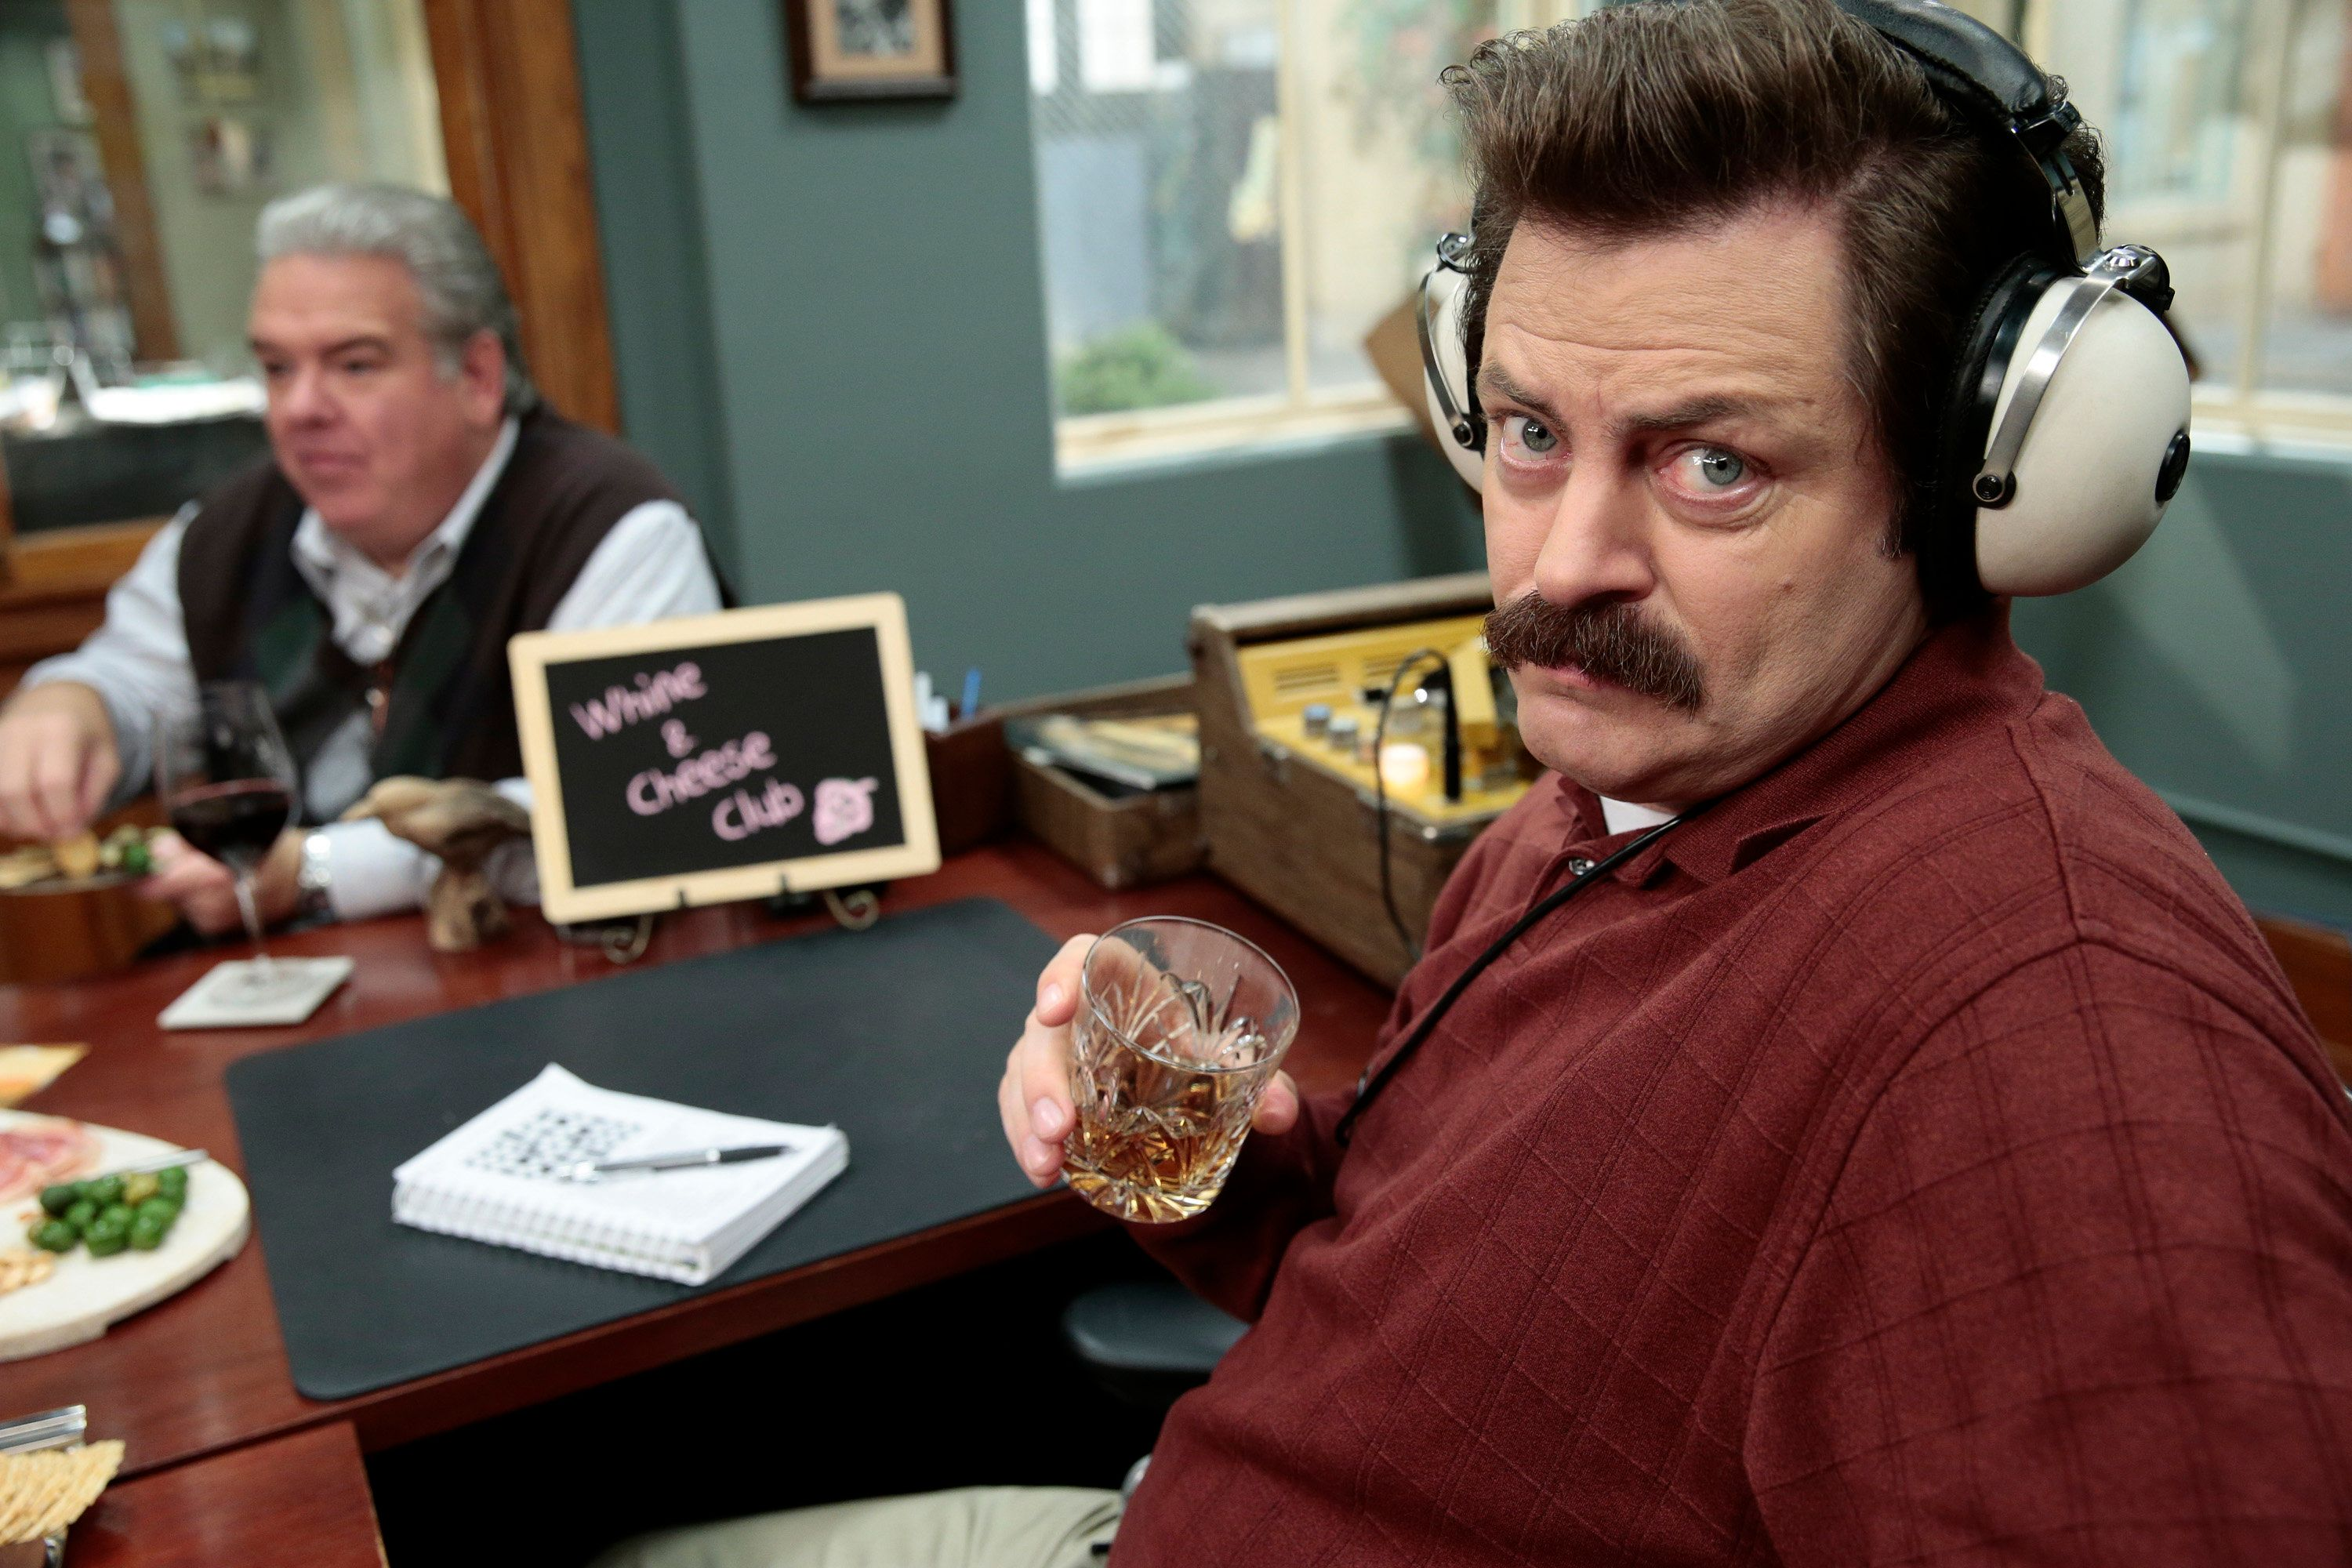 PARKS & RECREATION -- 'Farmers Market' Episode 612 -- Pictured: (l-r) Jim O'Heir as Jerry, Nick Offerman as Ron Swanson -- (Photo by: Chris  Haston/NBC/NBCU Photo Bank via Getty Images)